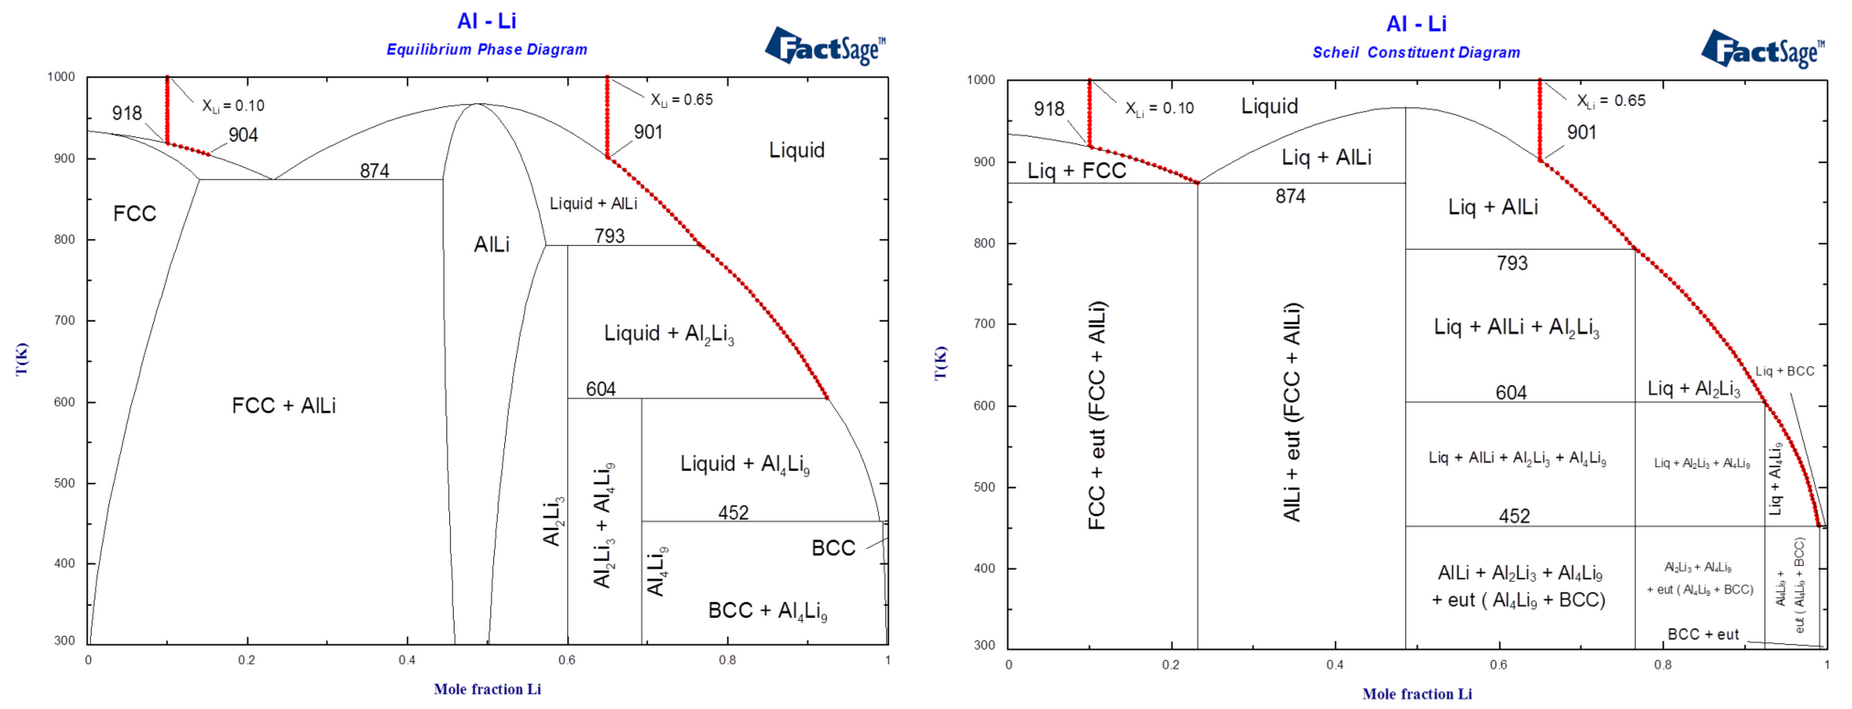 Whats new in factsage 71 diagrams of the al li system illustrating solidification of alloys of compositions xli 010 and xli 065 1 calculated phase diagram and equilibrium pooptronica